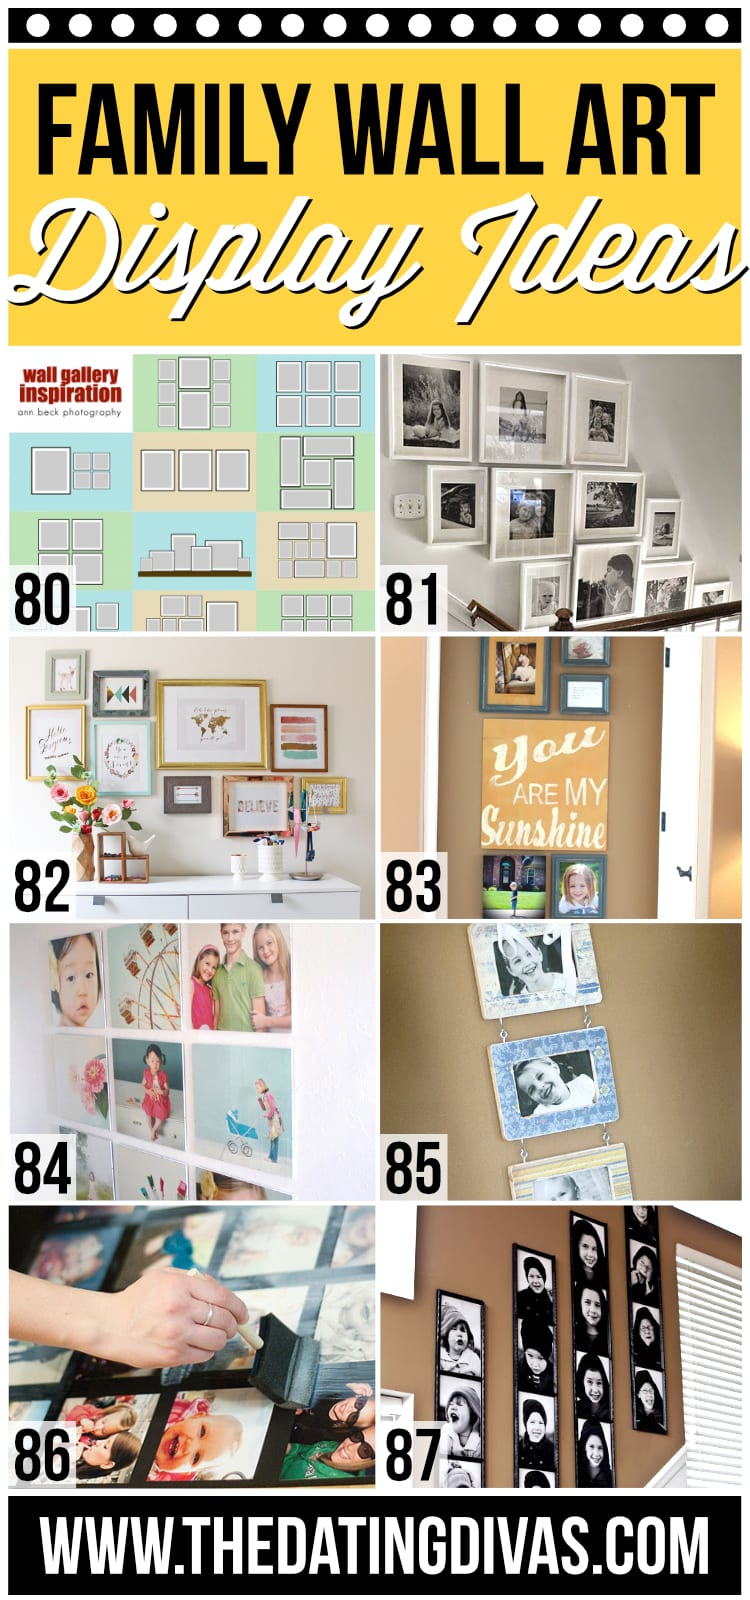 Family Wall Art Display Ideas